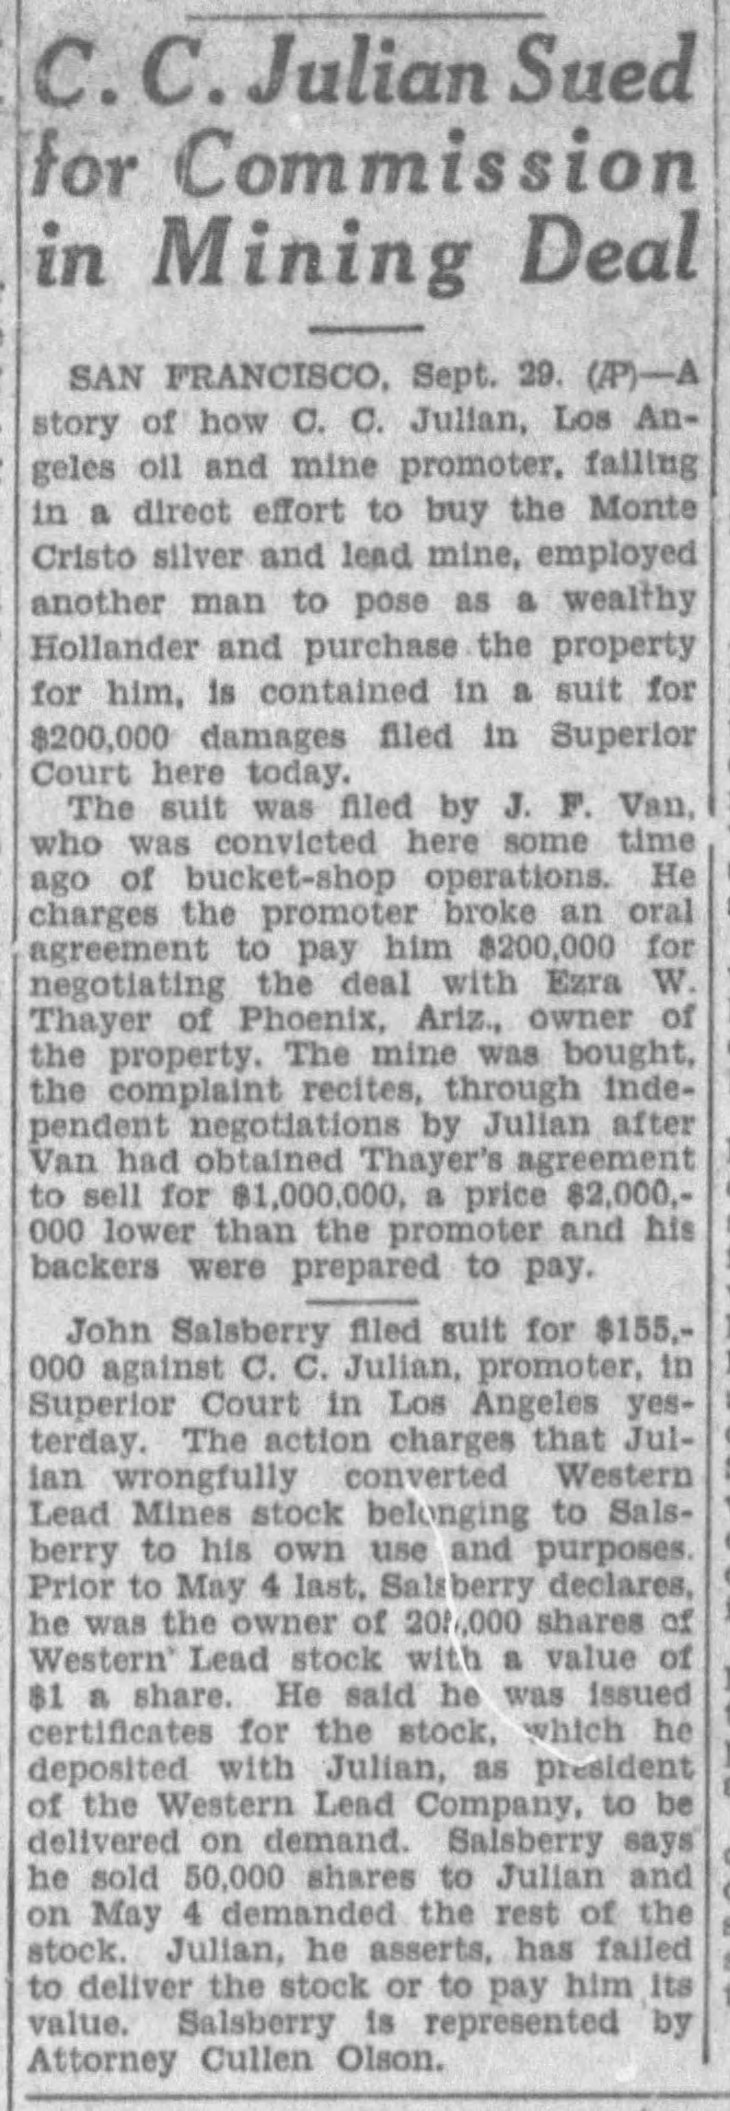 Julian sued by Van and Salsberry The_Los_Angeles_Times_Thu__Sep_30__1926_